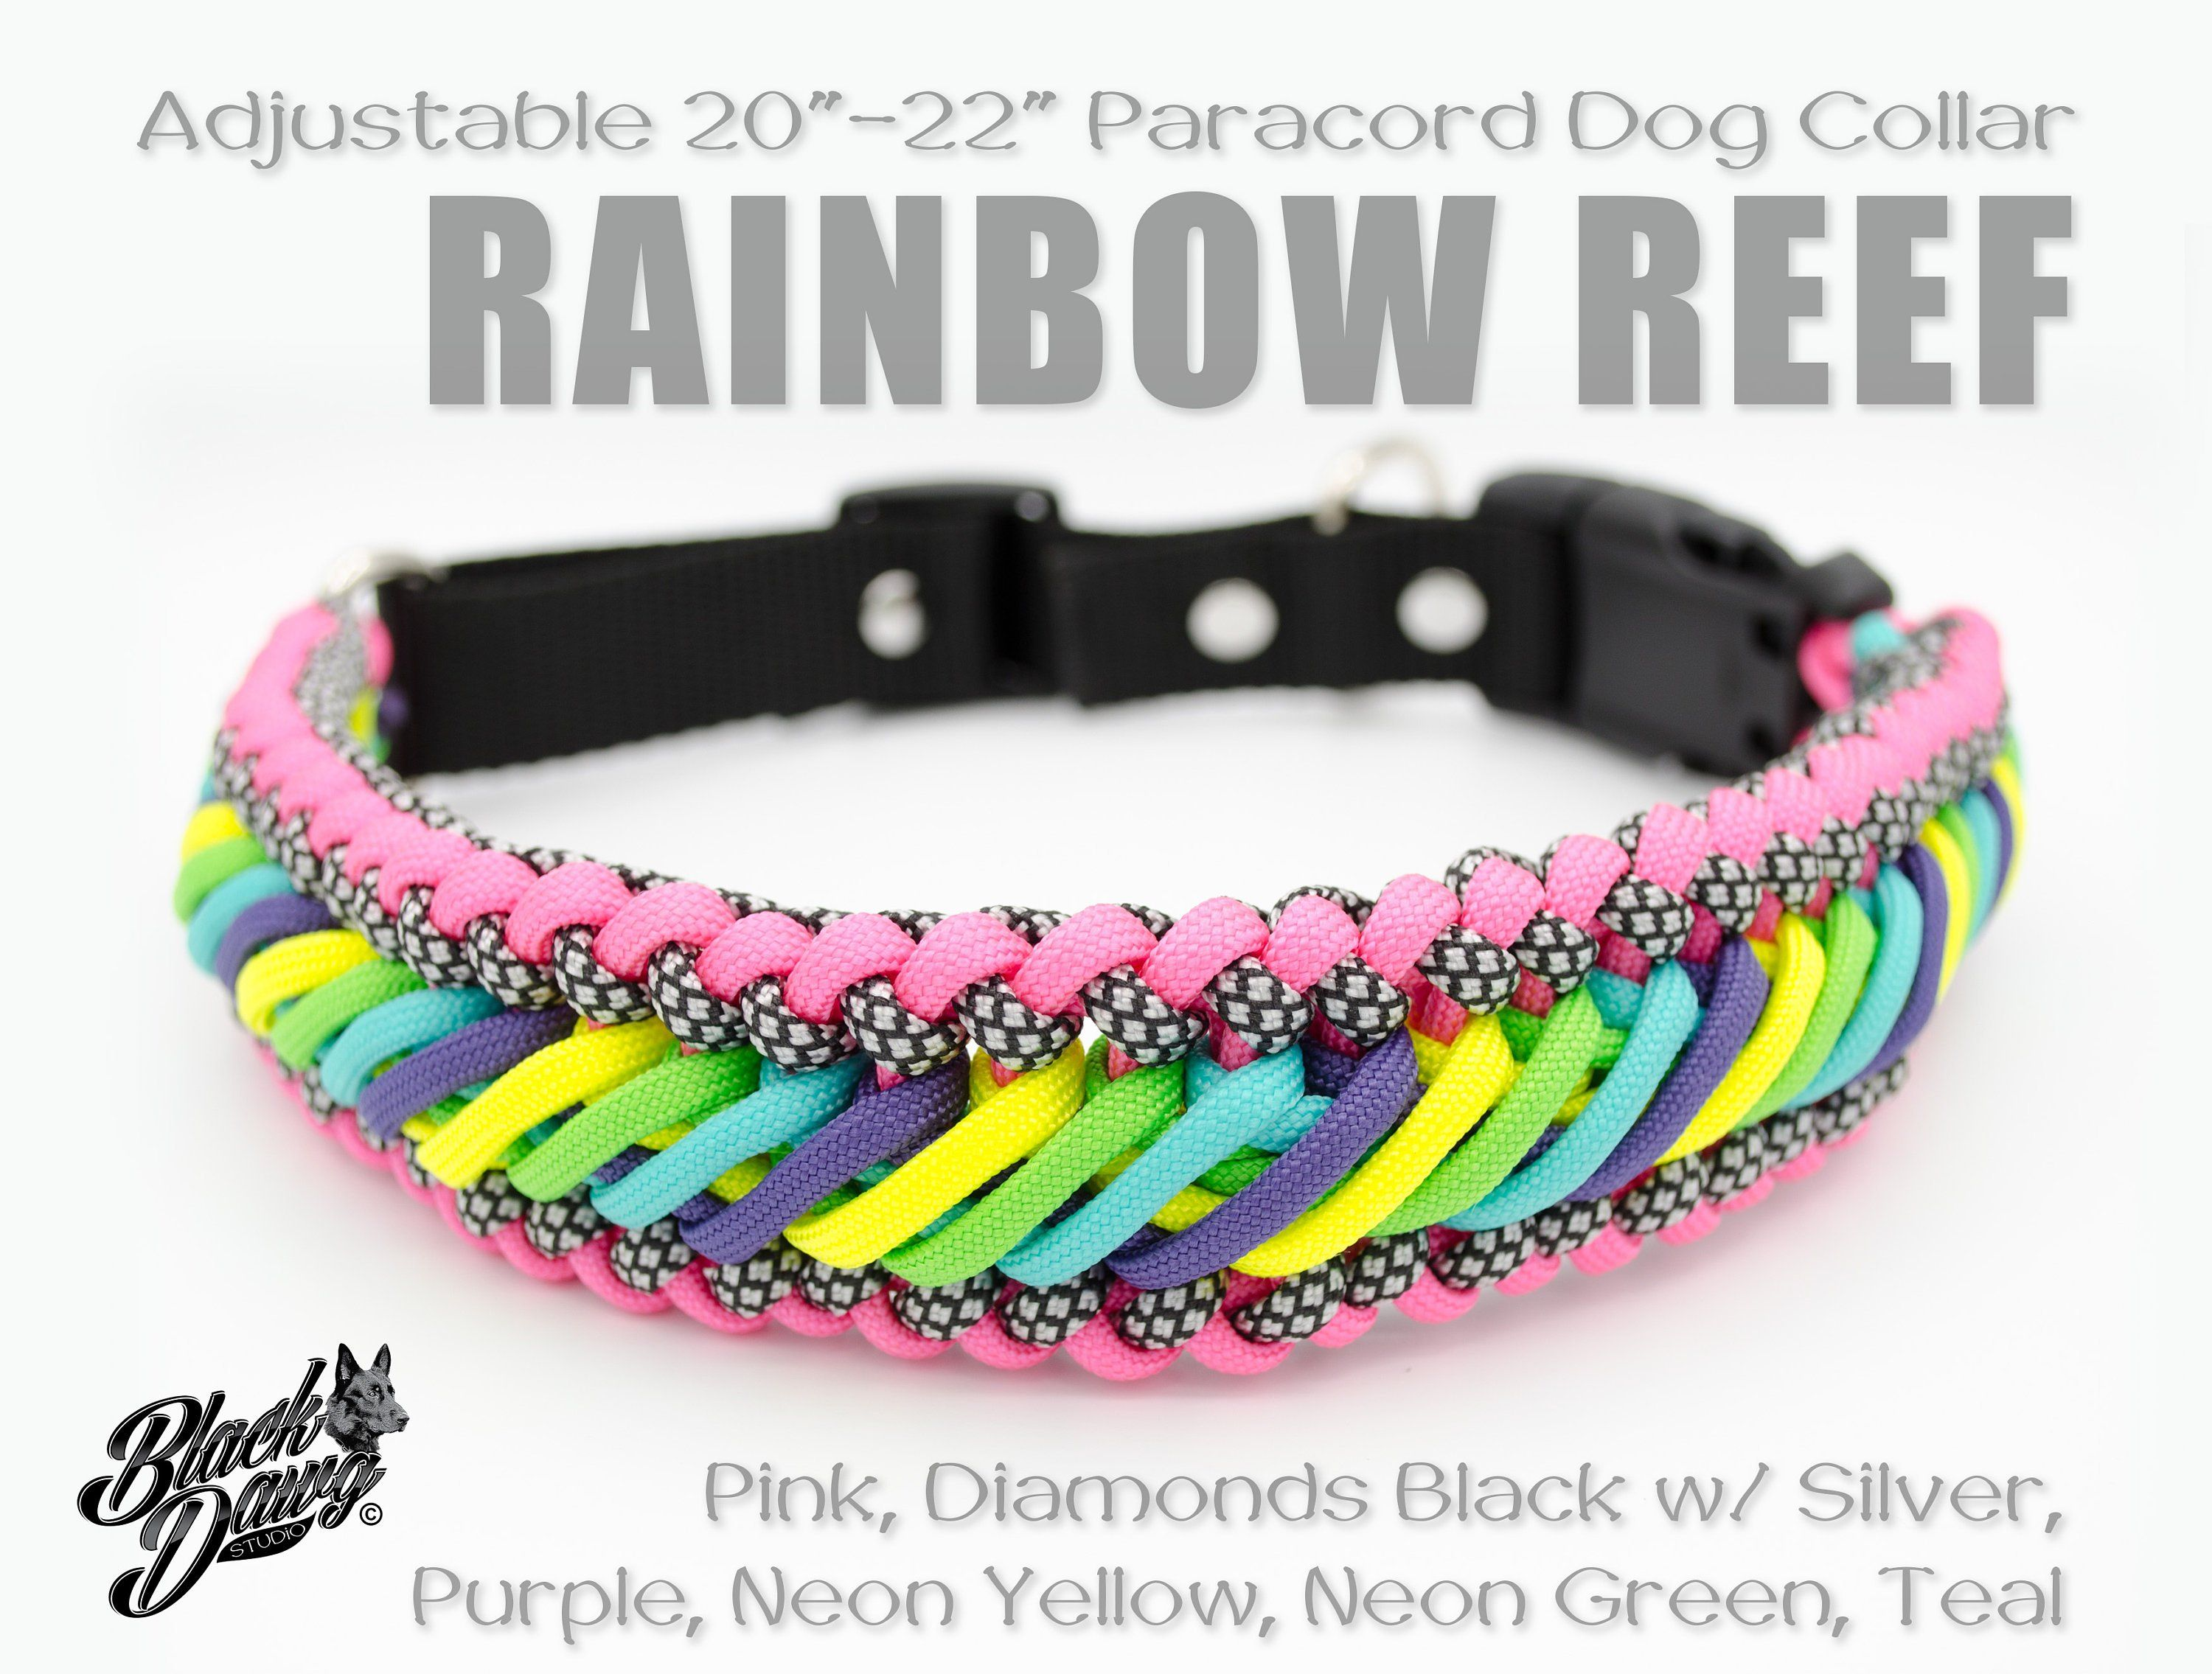 Adjustable 20 22 Paracord Dog Collar Rainbow Reef Design